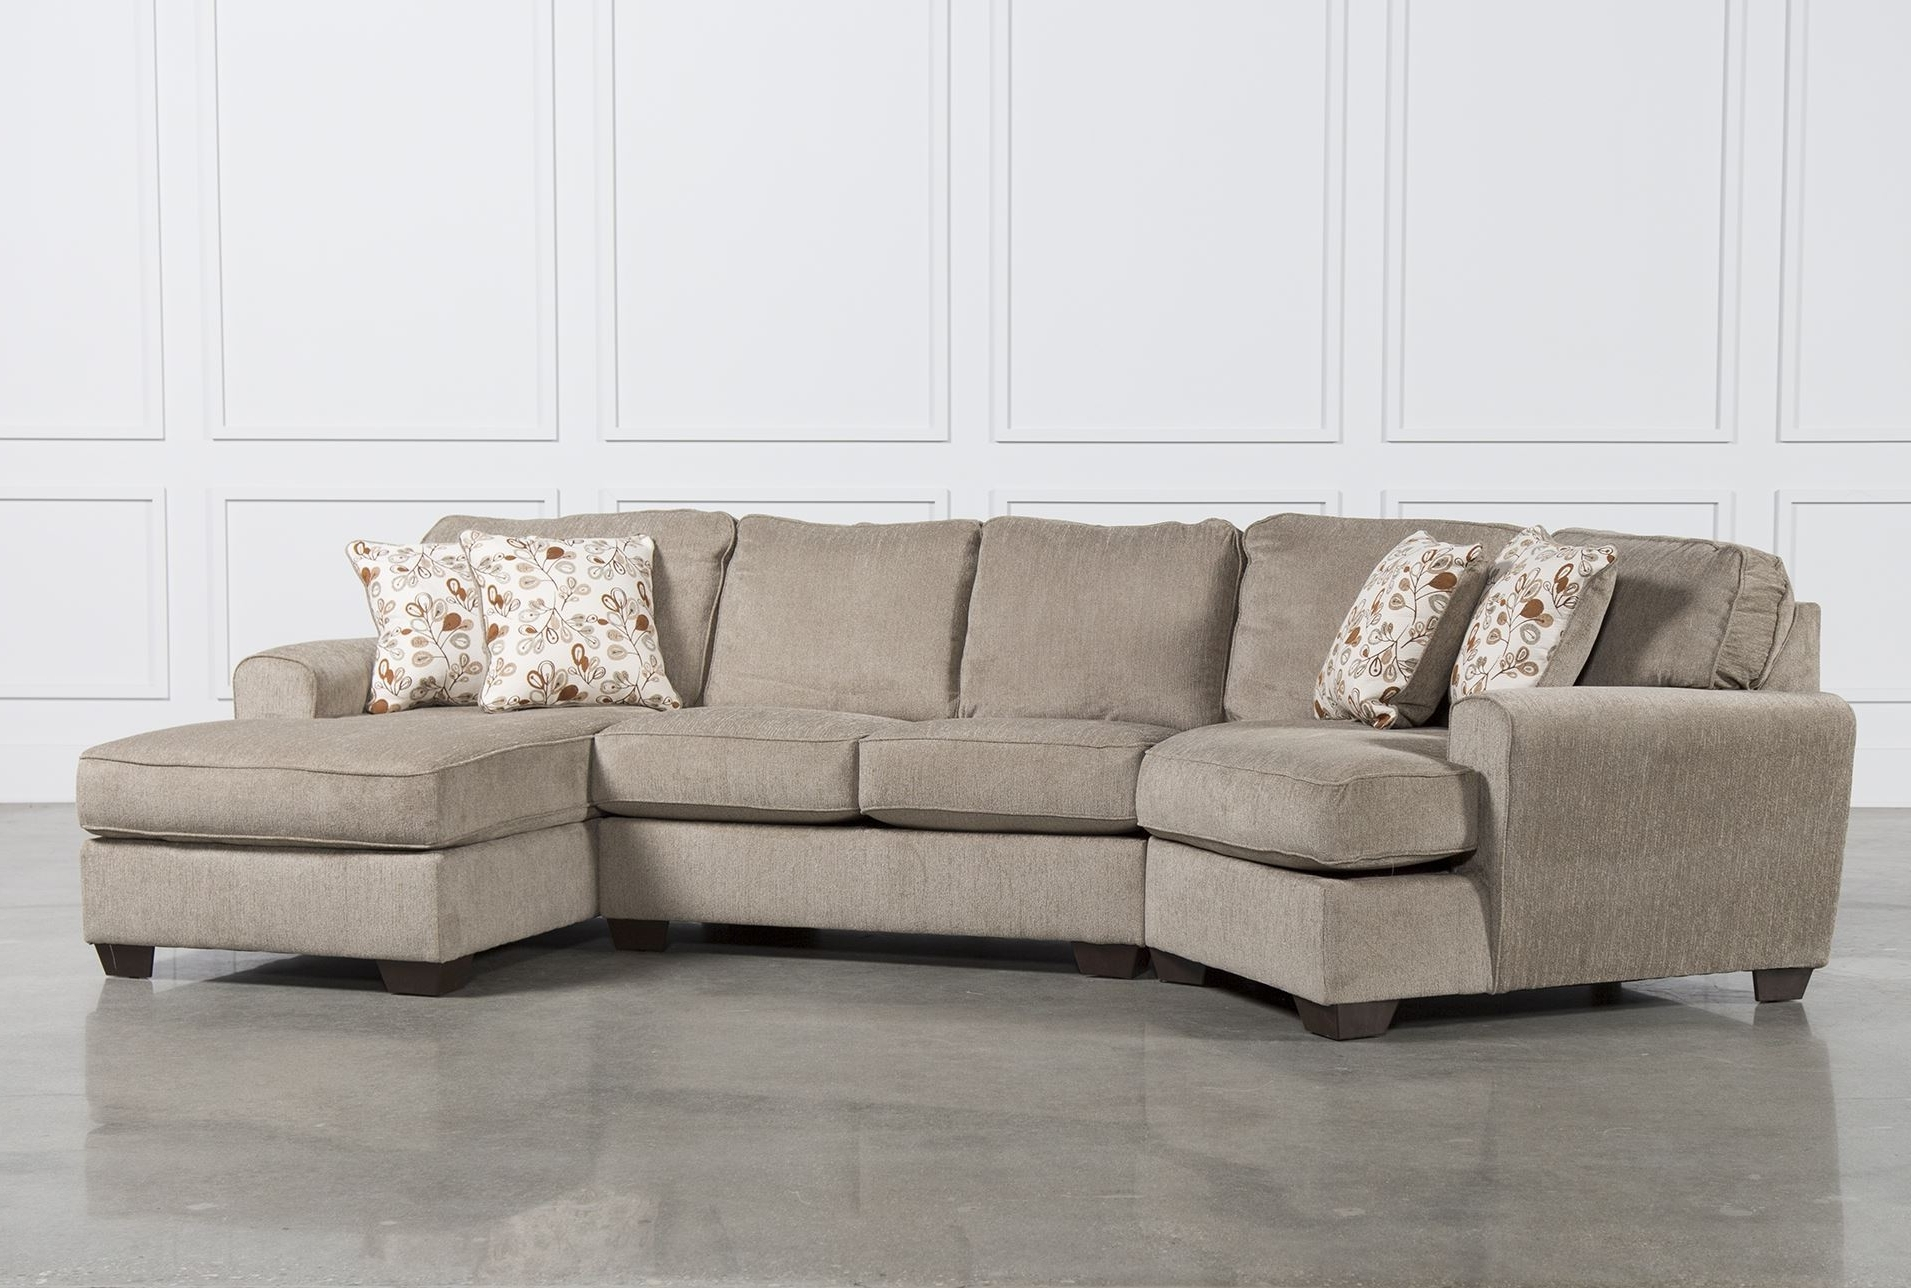 Furniture : Sectional Sofa Fabric Rc 216 088 Recliner Corner Couch With Regard To Most Popular El Paso Sectional Sofas (View 12 of 20)